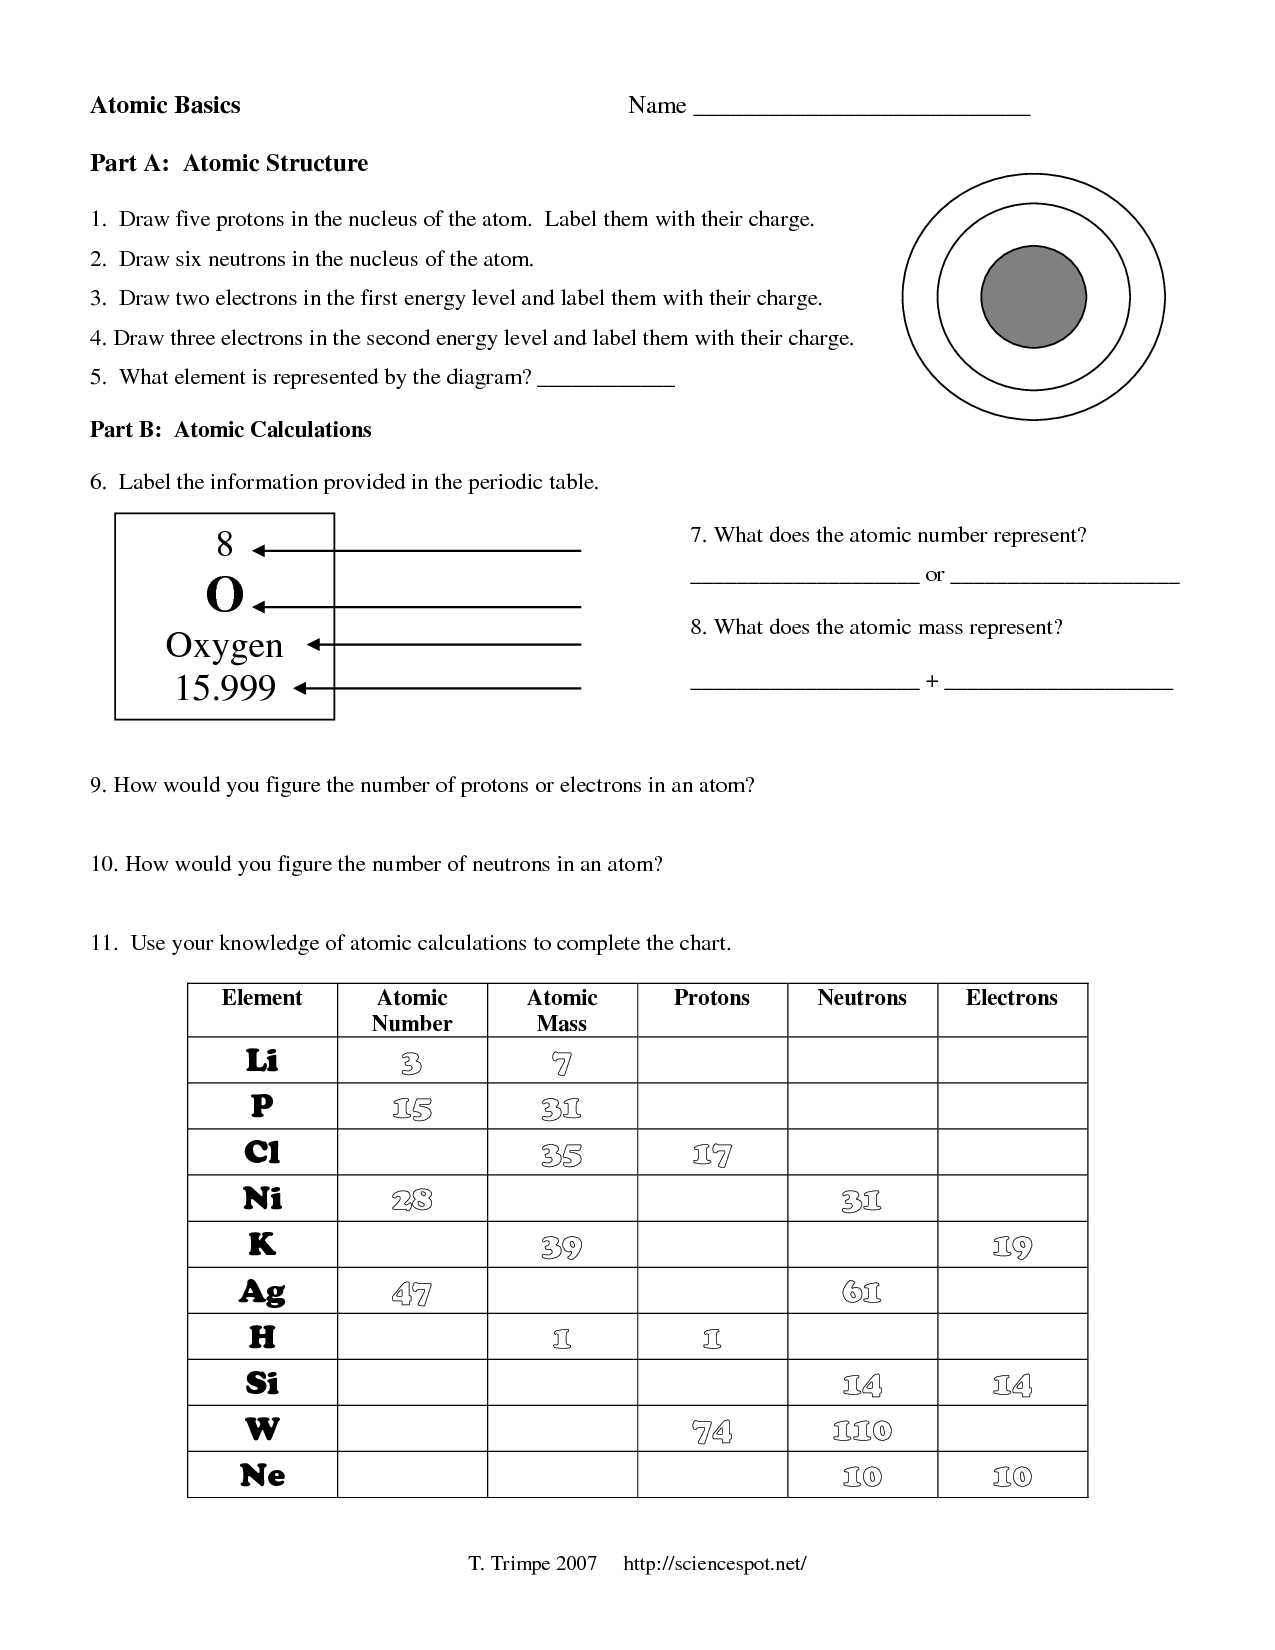 Atomic Structure Worksheet Answer Key   Escolagersonalvesgui